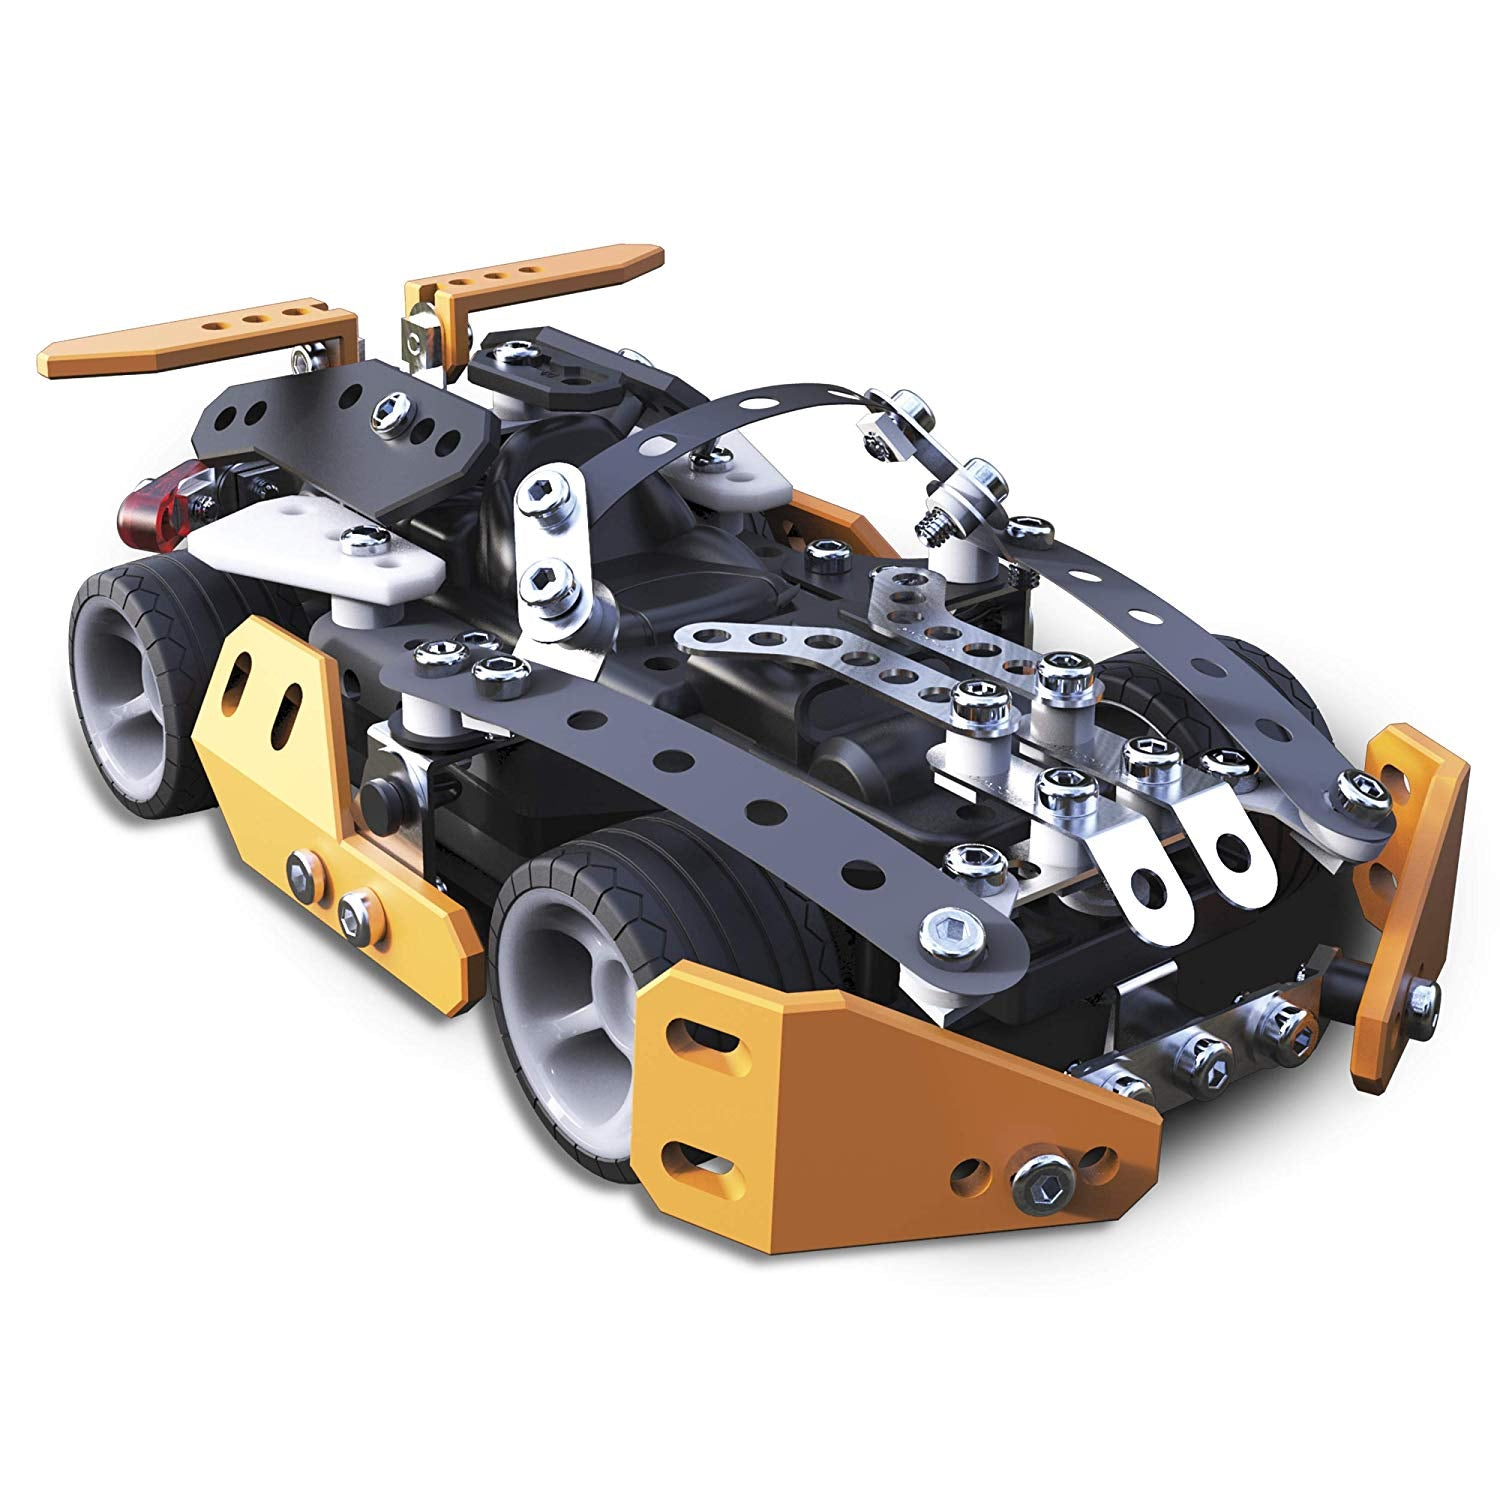 Meccano Roadster R/C Building Set